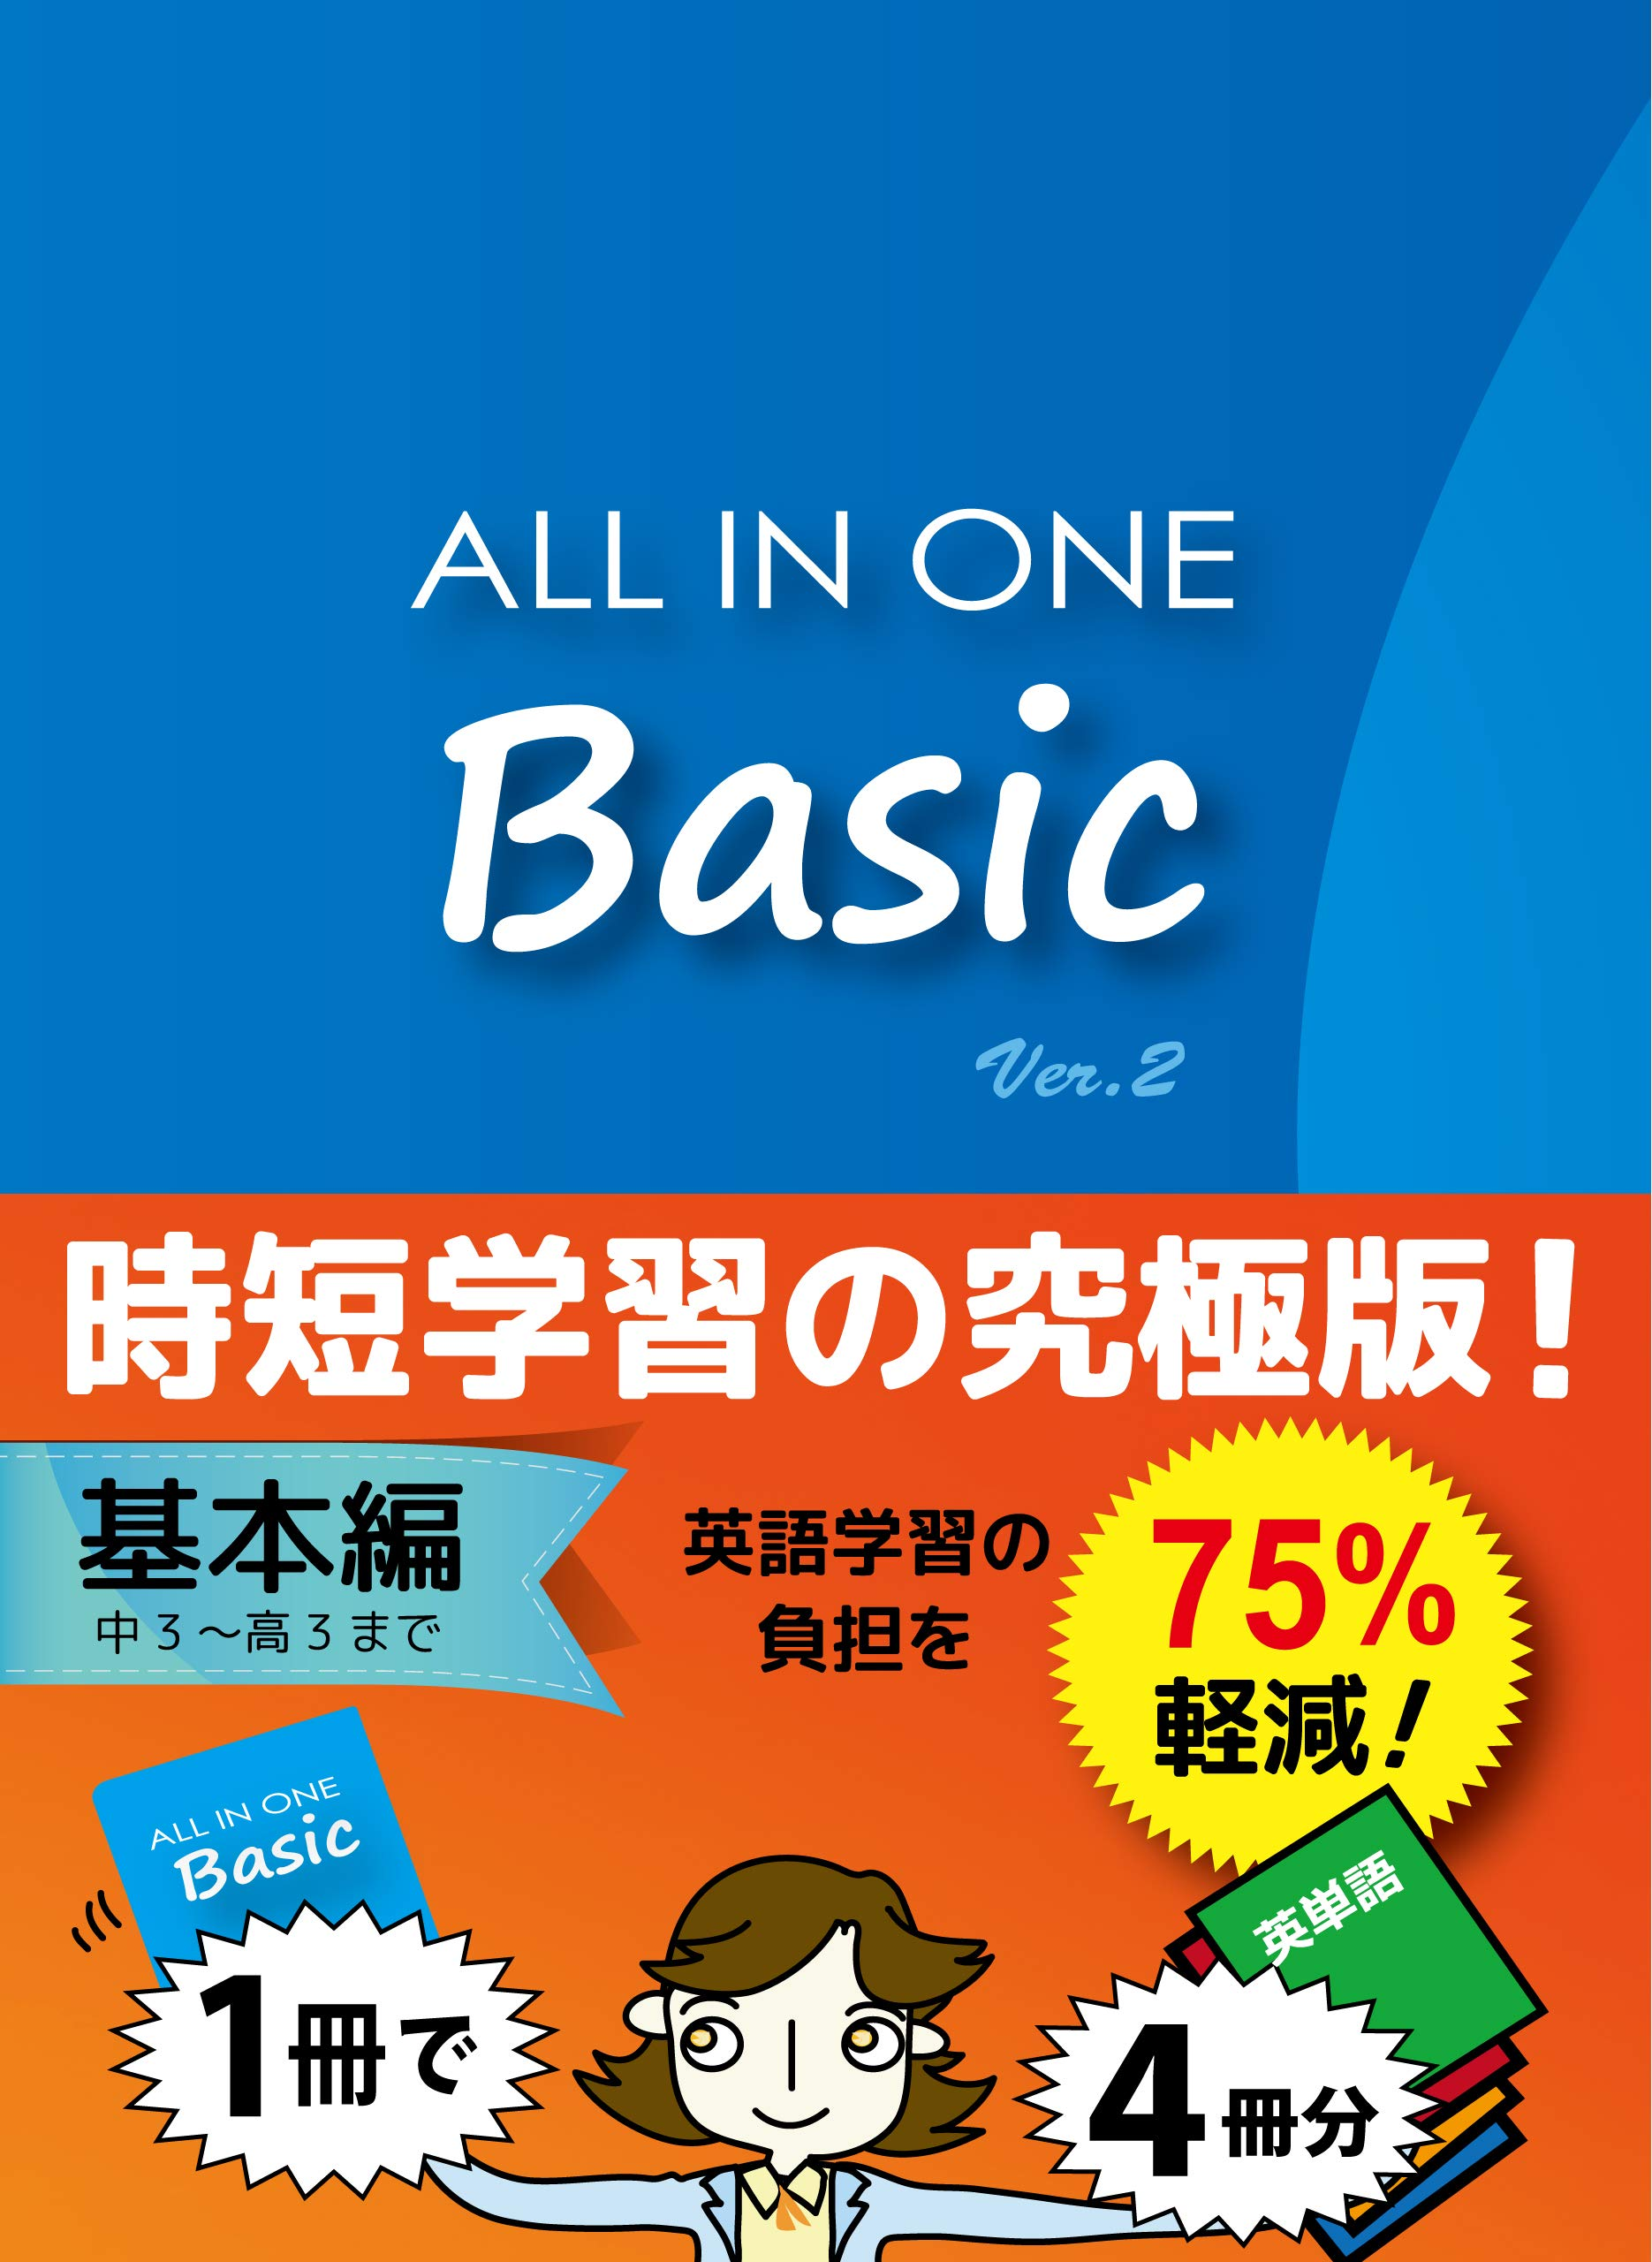 One basic in all